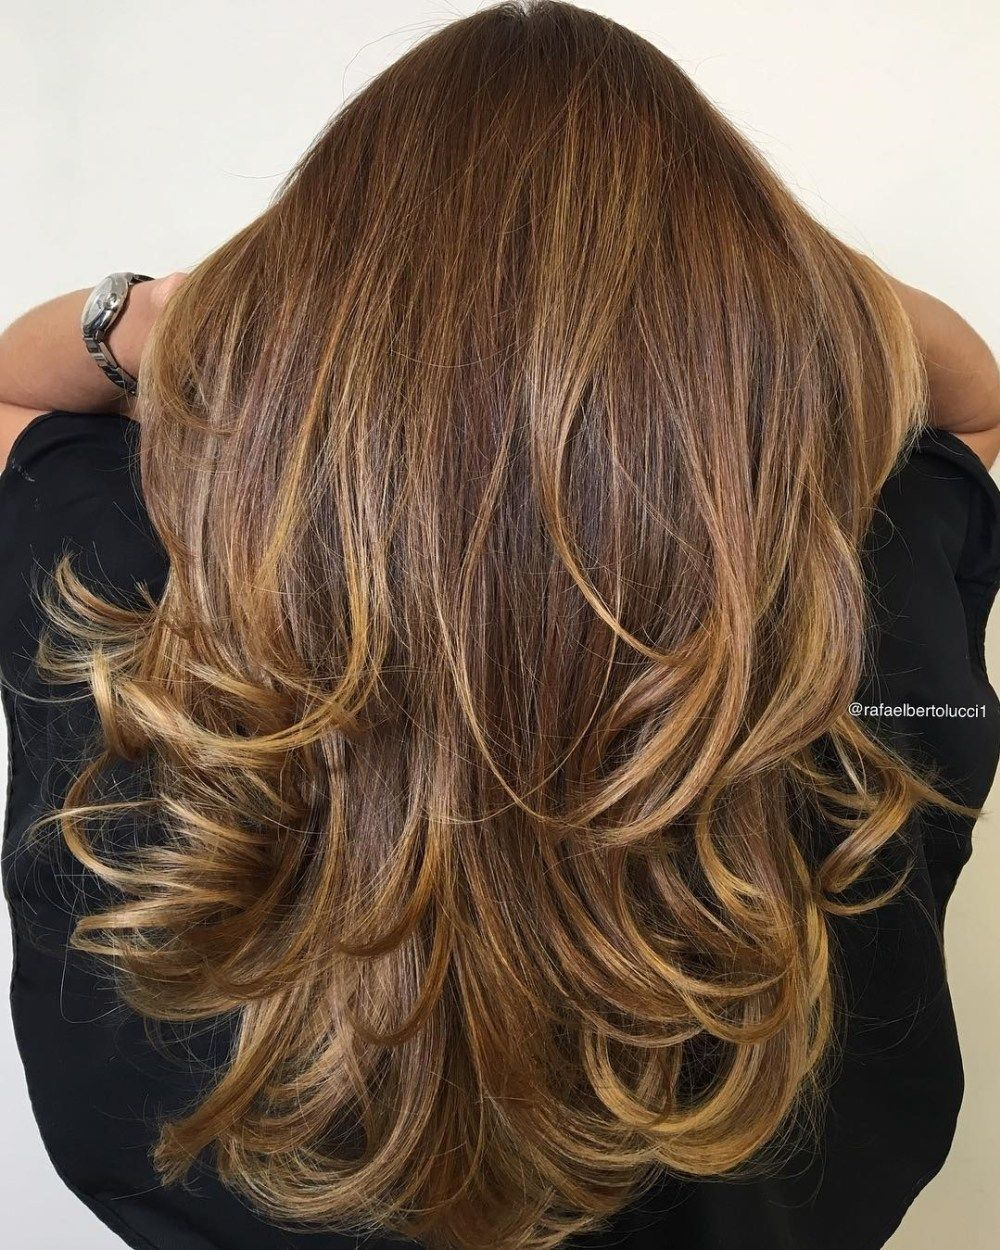 20 Golden Brown Hair Color Ideas All Brunettes Need To See Golden Brown Hair Color Golden Brown Hair Brown Hair Colors